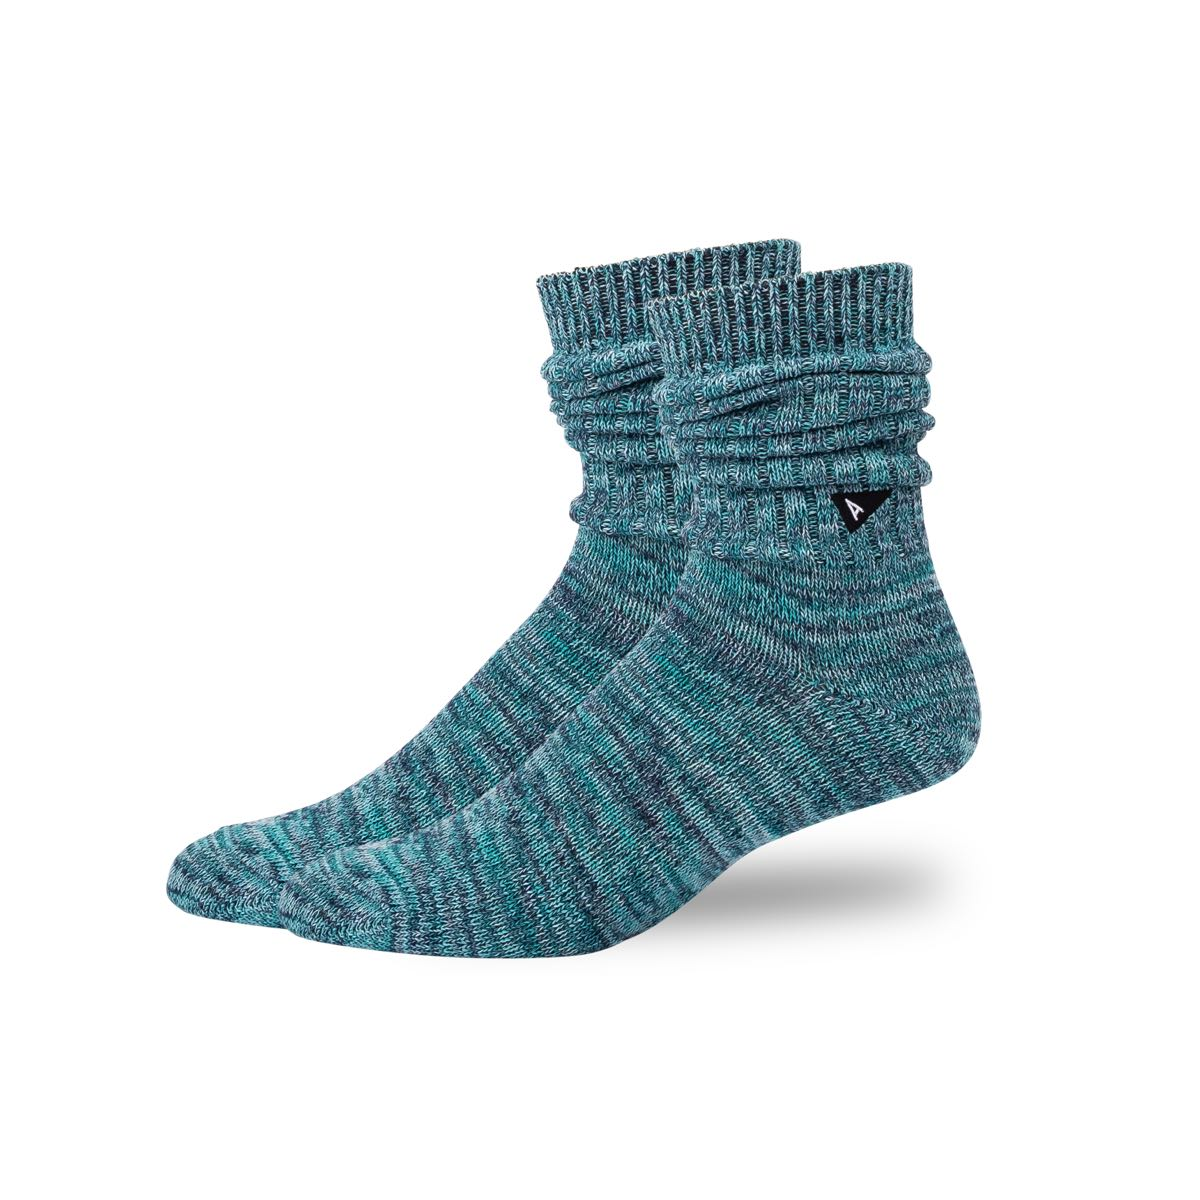 Arvin Goods Casual Twisted Socks - Teal image 3